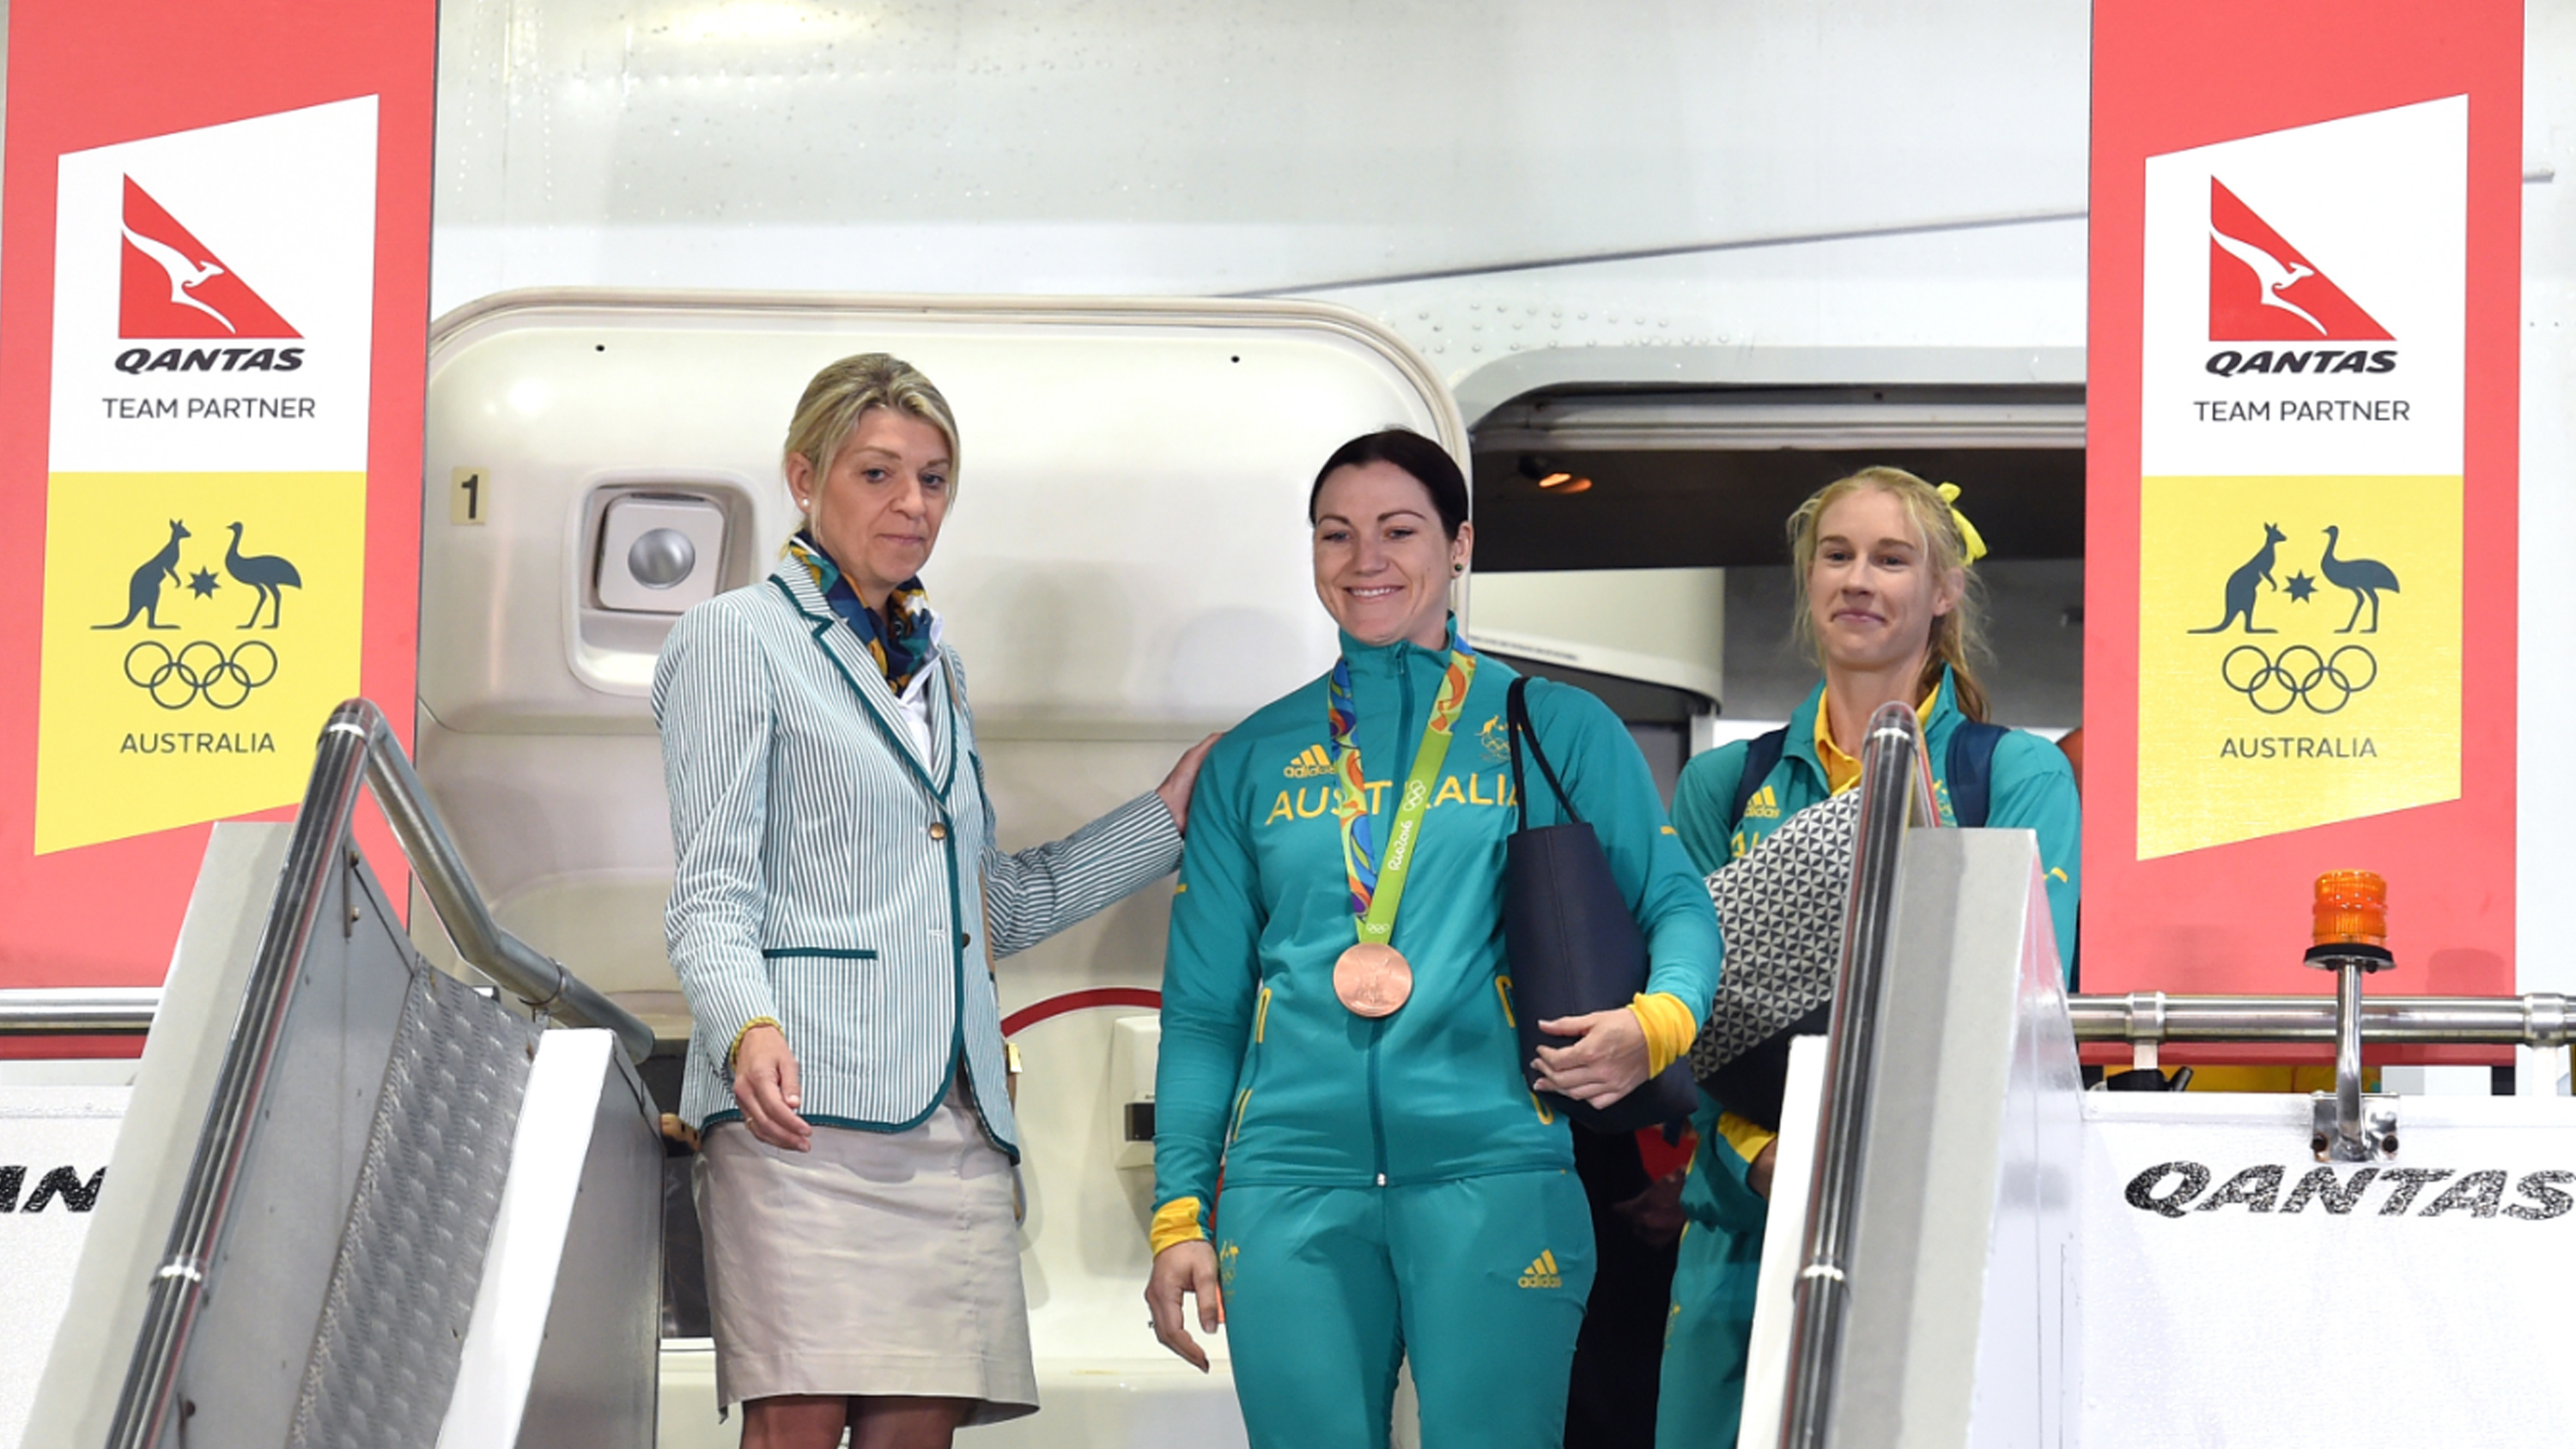 <strong>Australia's Olympic athletes arrived home from Rio this morning, touching down to a cheering crowd at Sydney Airport.&nbsp;</strong>